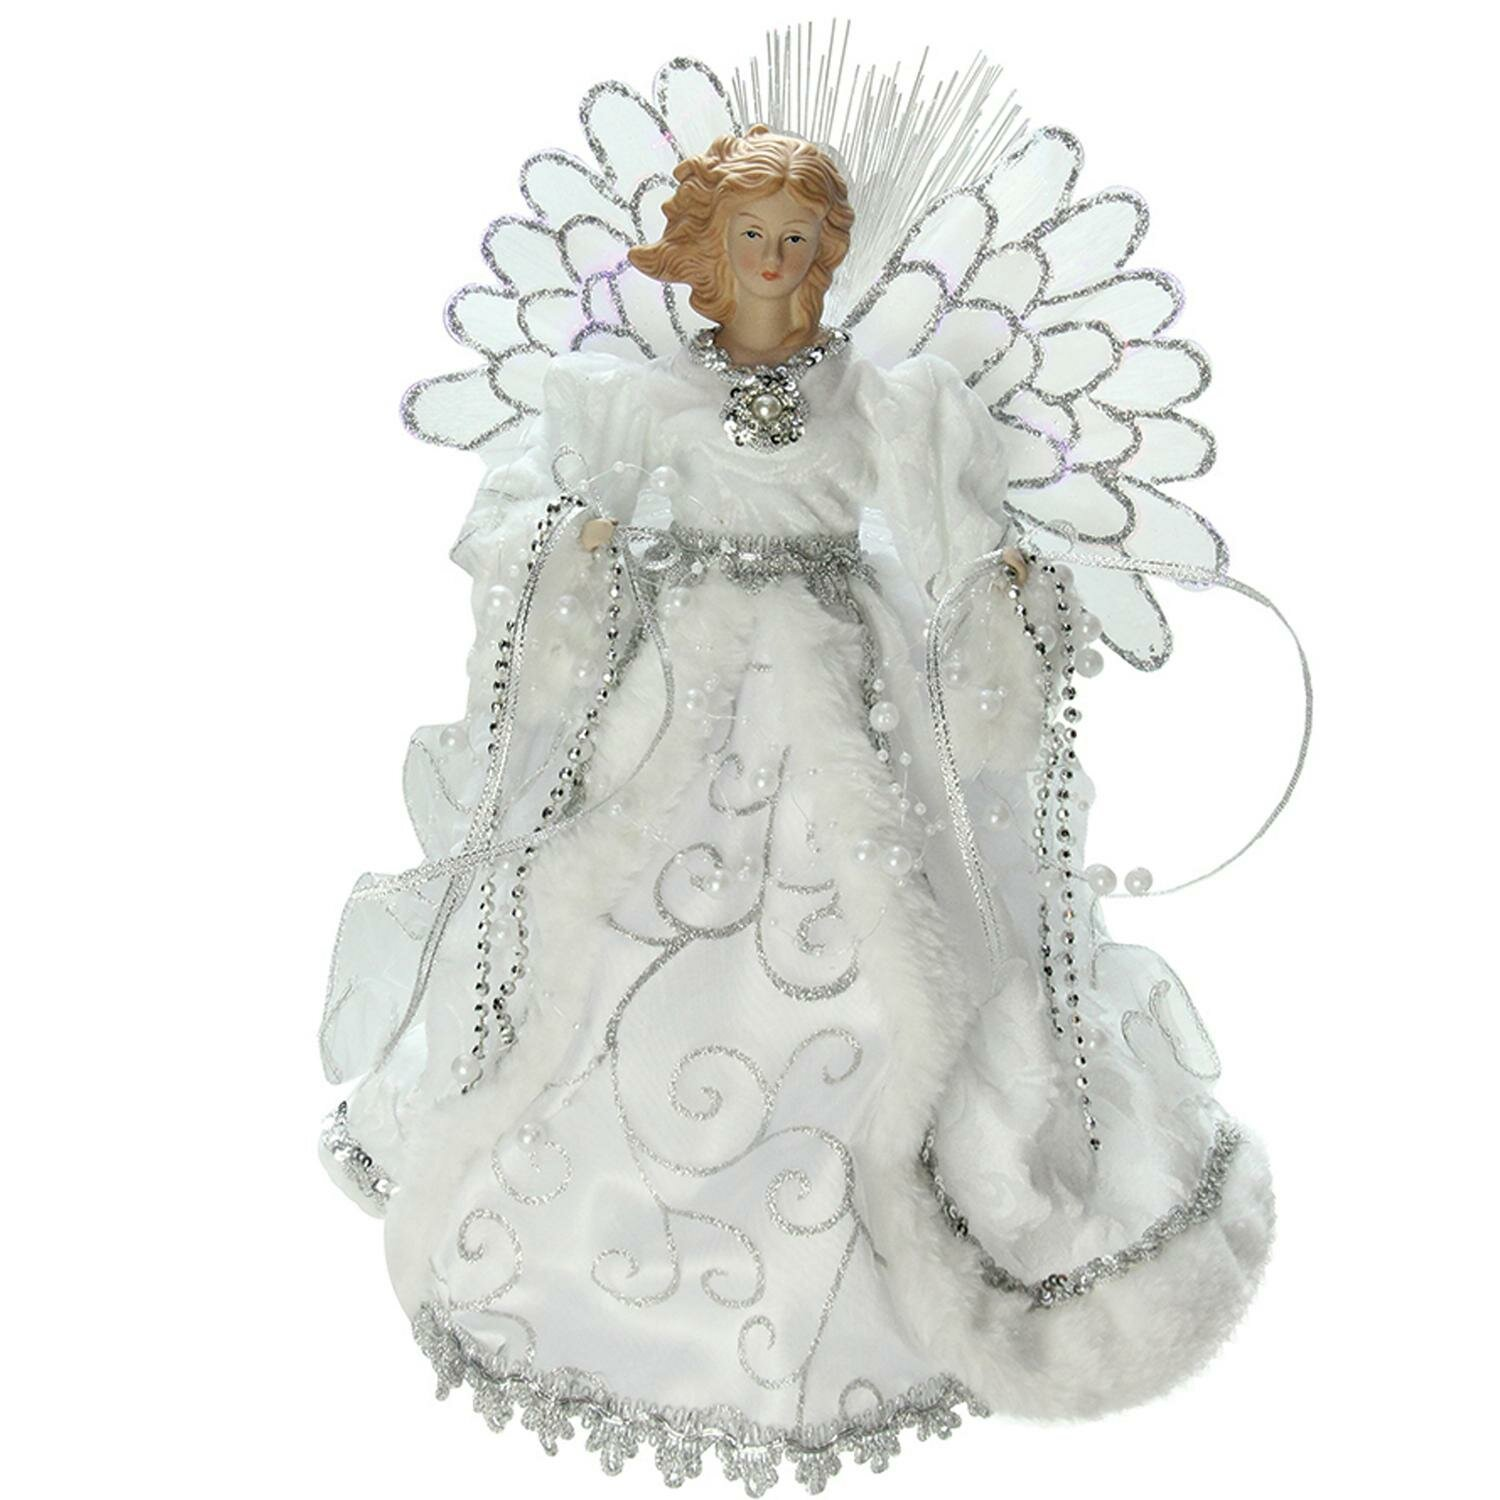 Northlight Lighted B O Fiber Optic Angel With Gown Christmas Tree Topper Reviews Wayfair